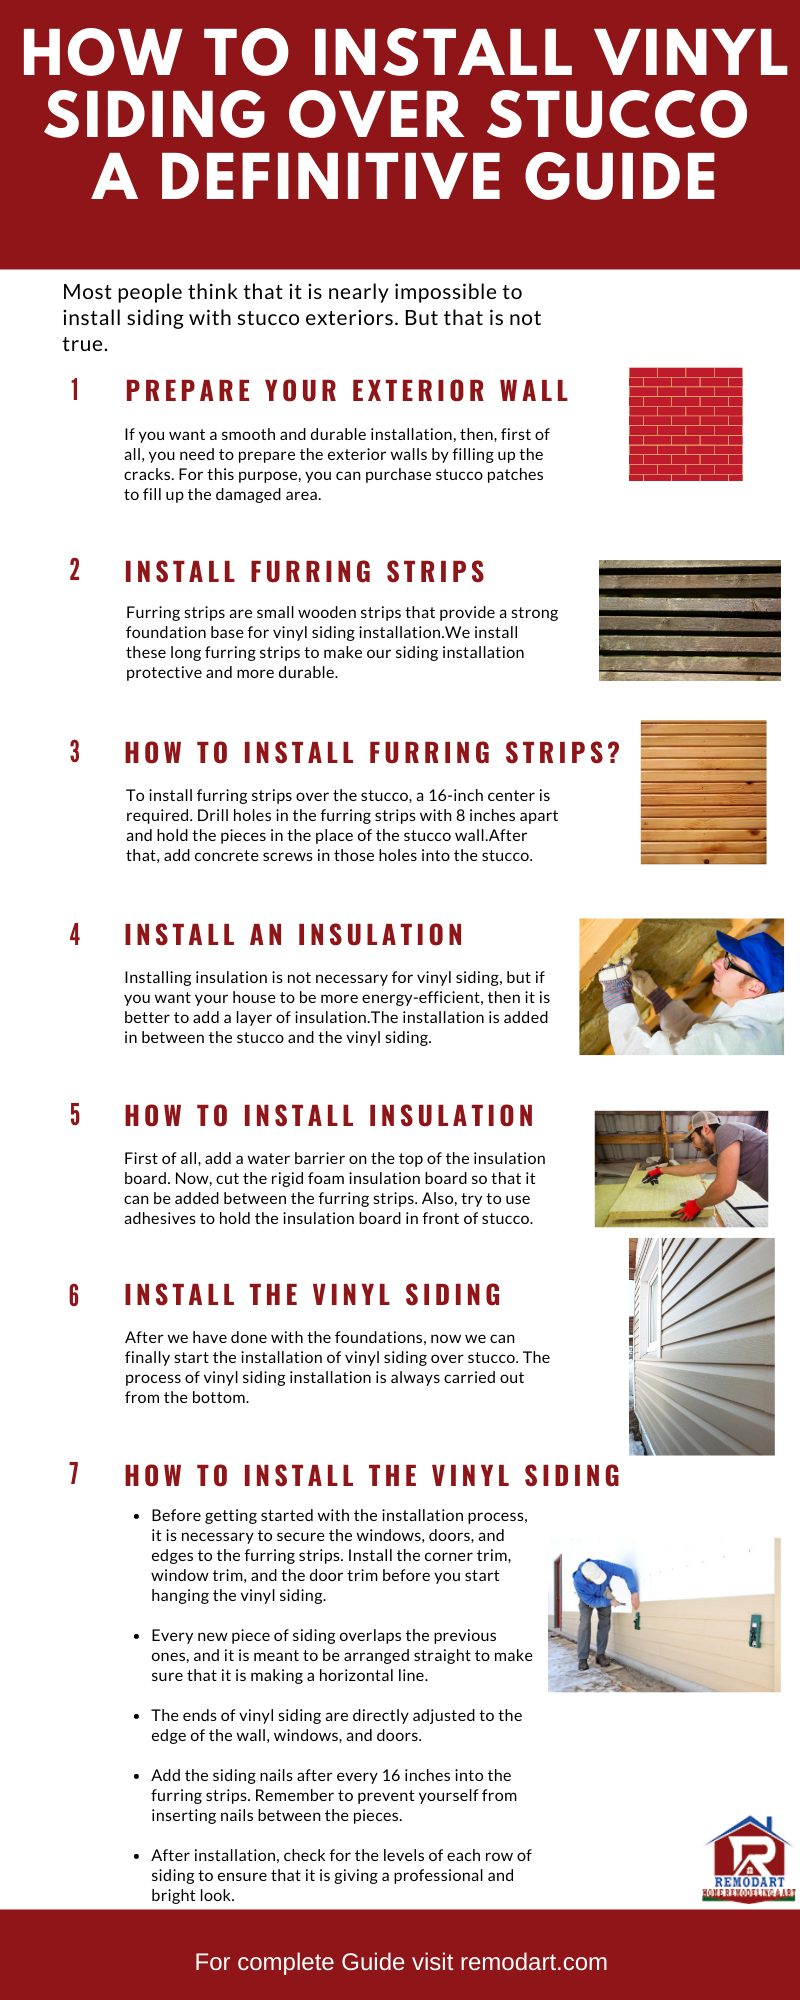 How to Install Vinyl Siding Over Stucco - A Definitive Guide